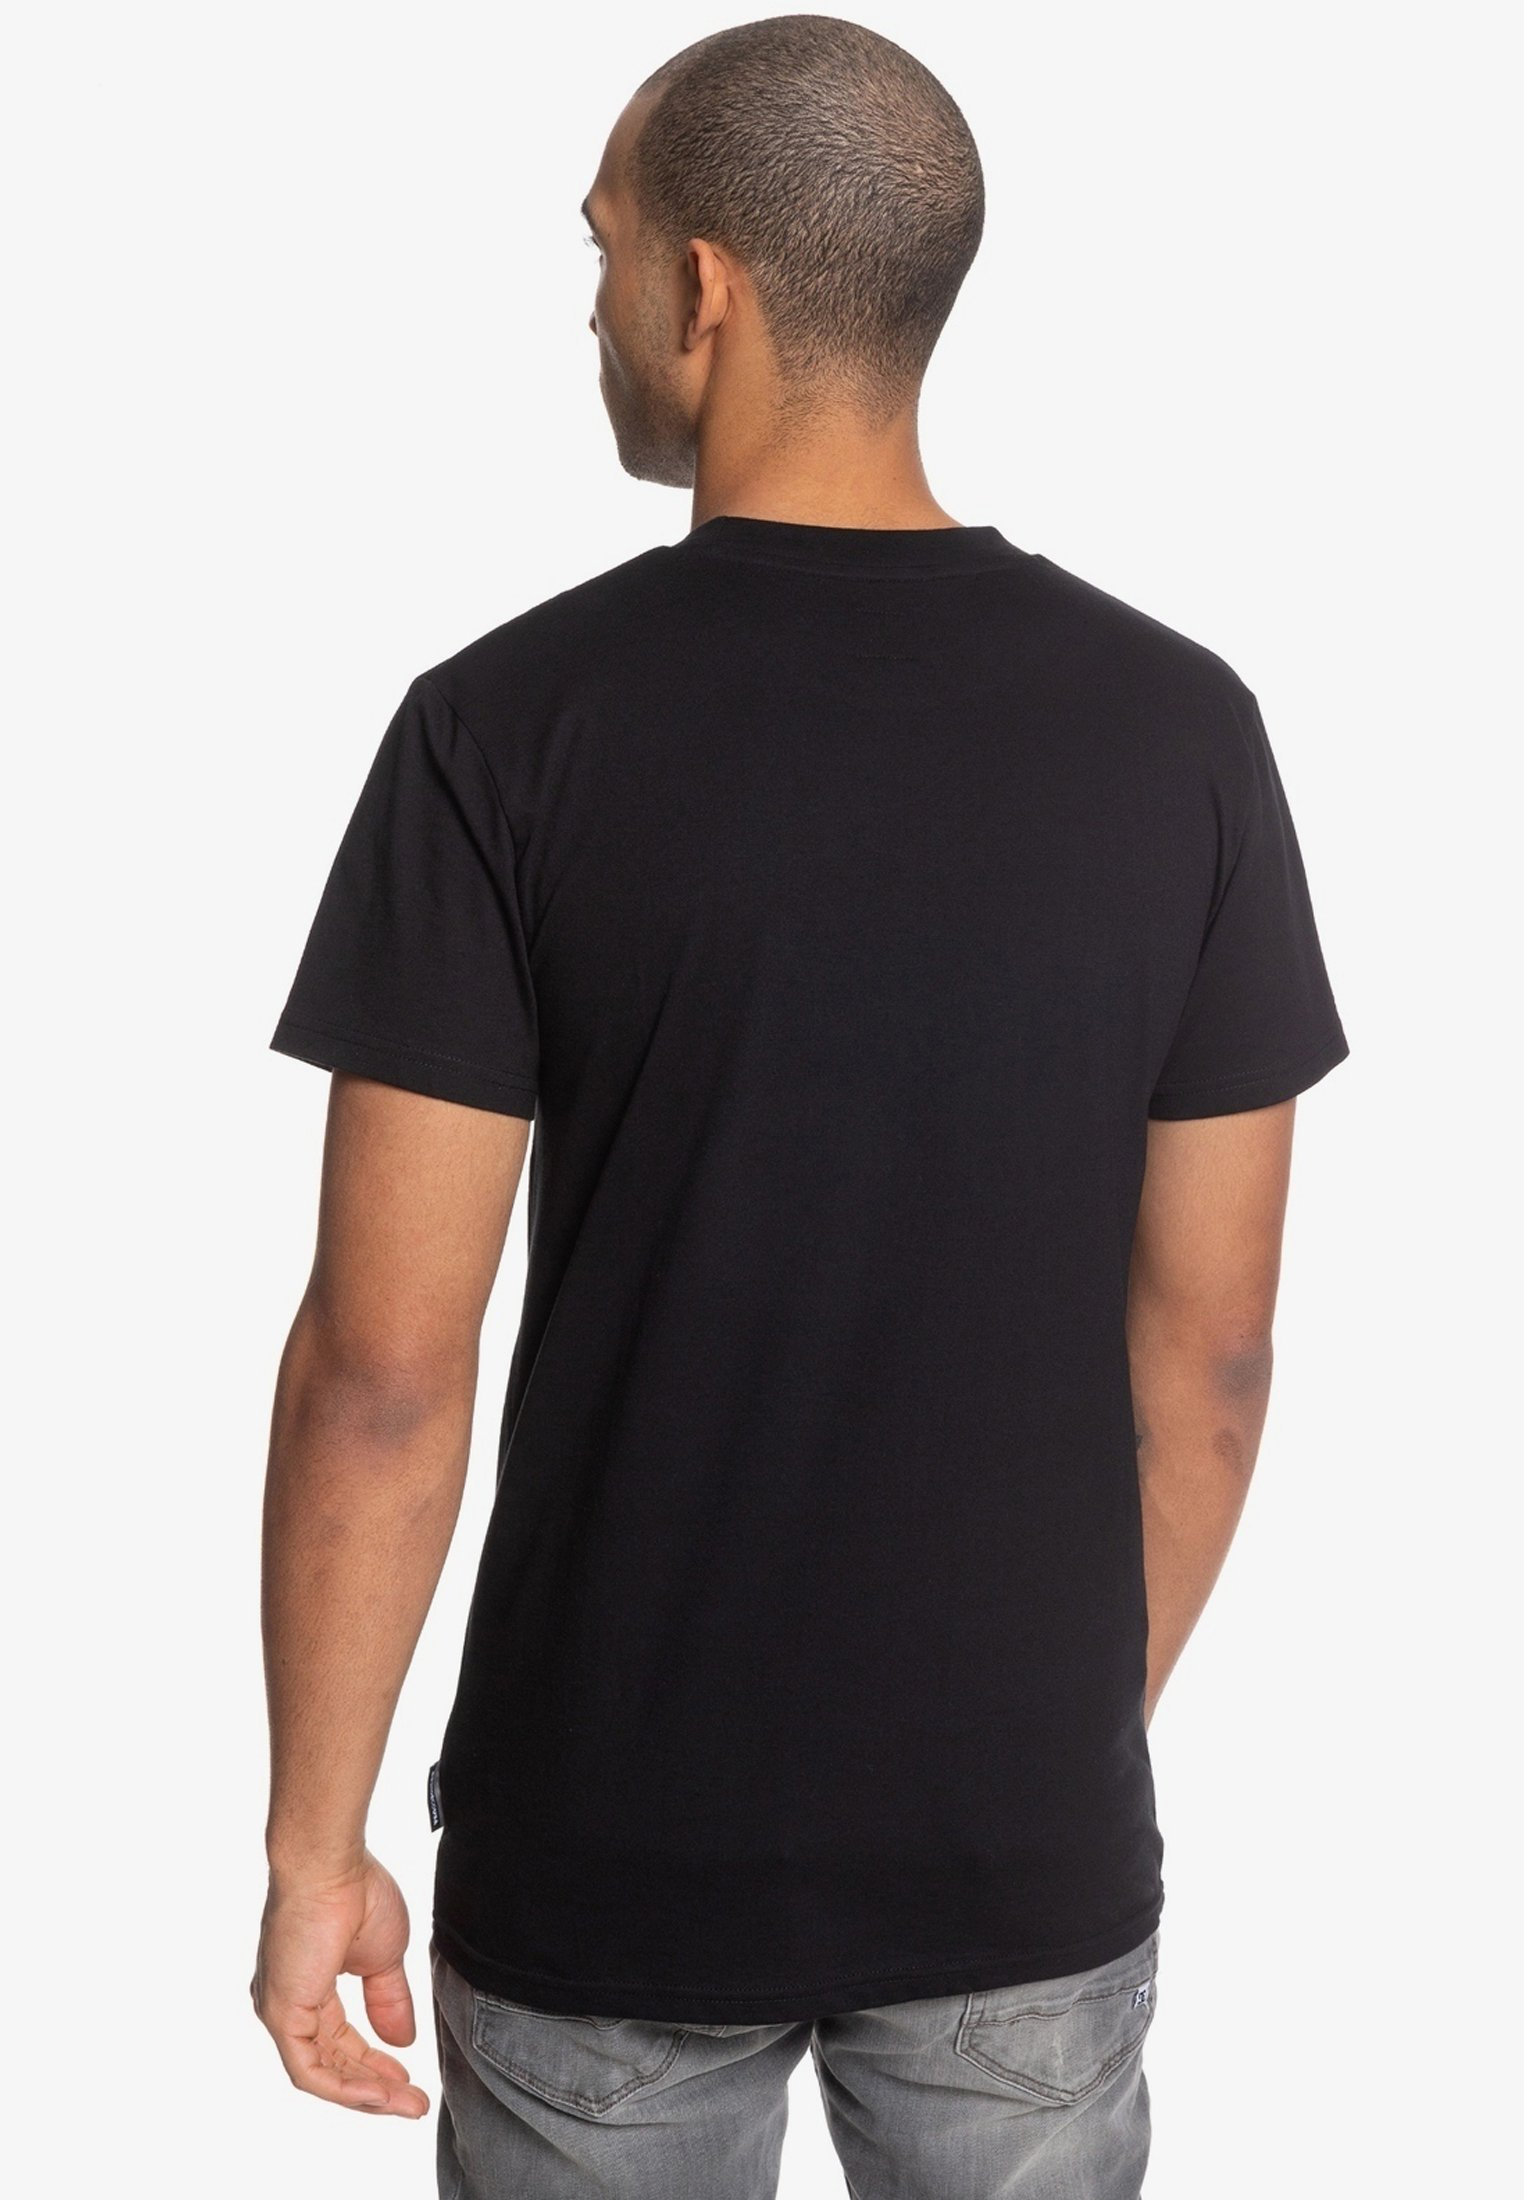 DC Shoes Basic T-shirt - black 9bQPt